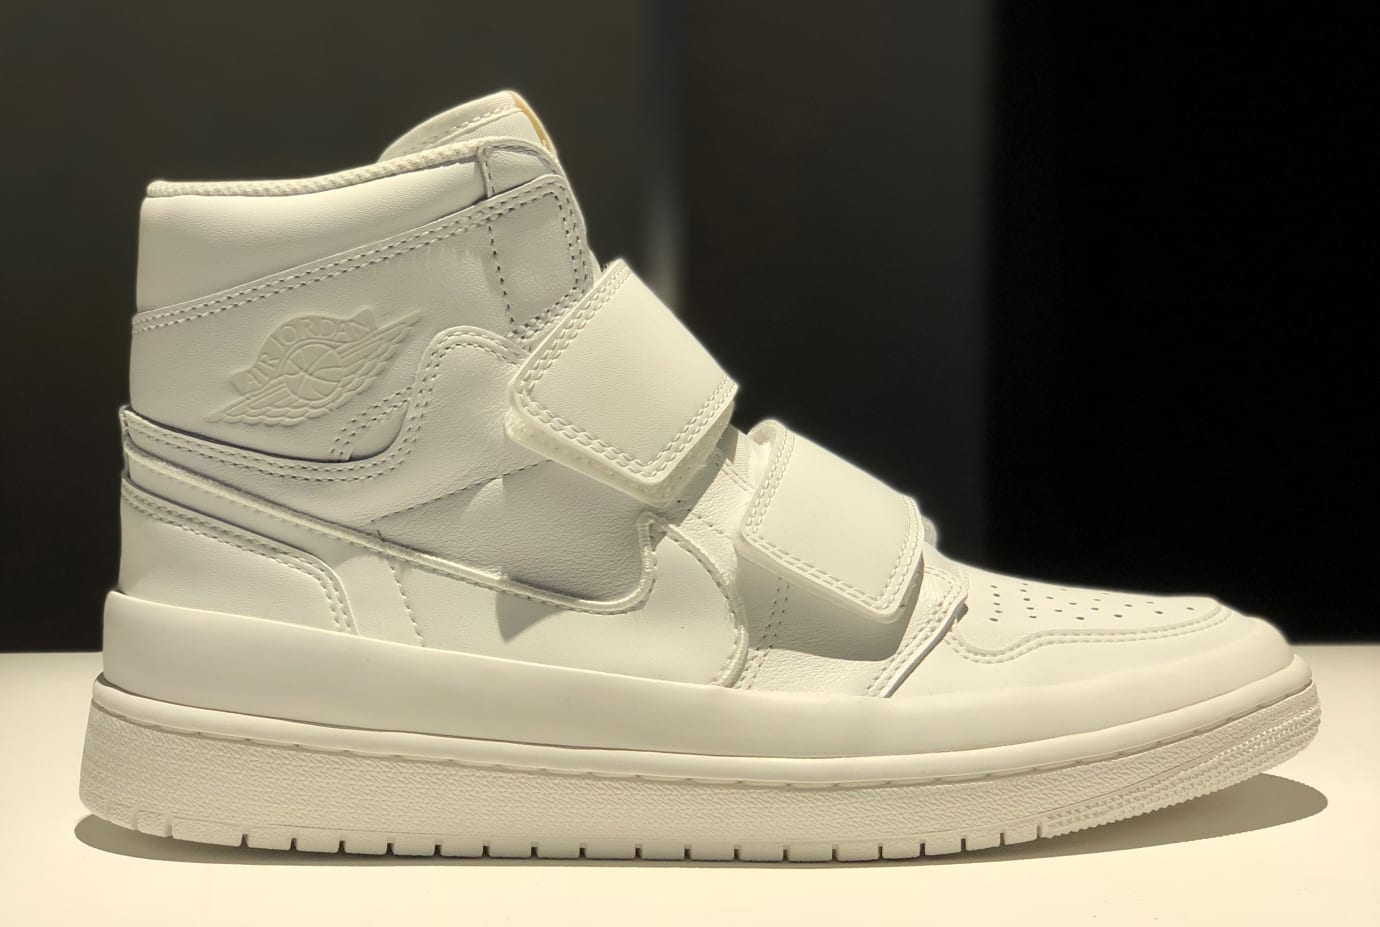 Air Jordan 1 High Velcro Men's White